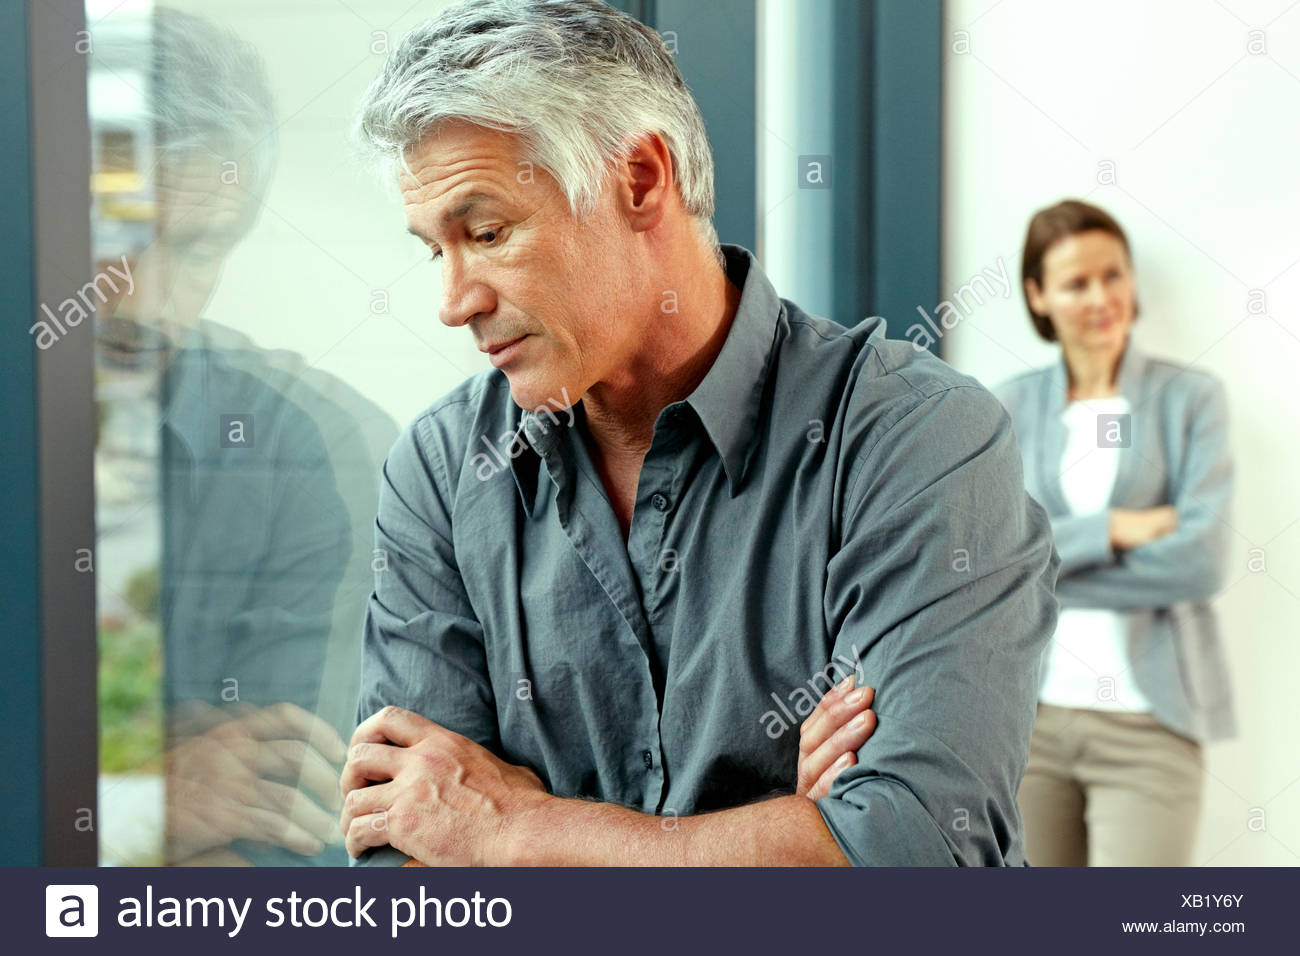 Portrait of unhappy man with his his wife standing in the background Stock Photo